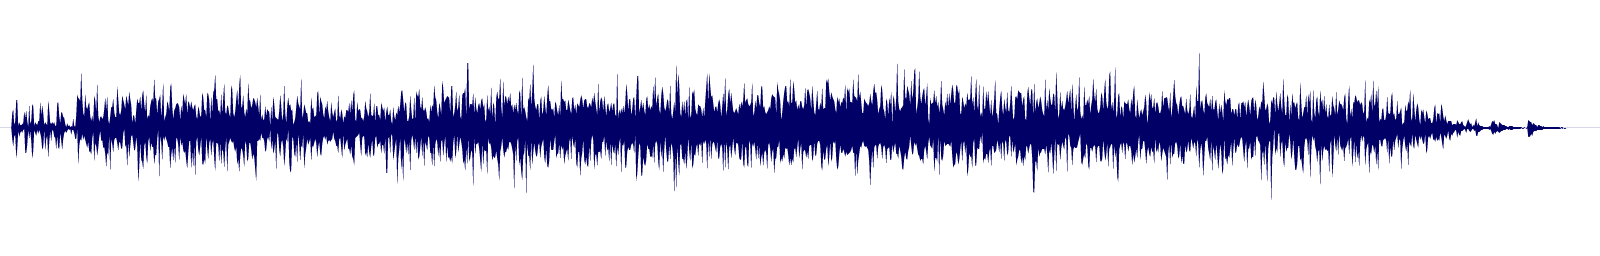 waveform of track #99116